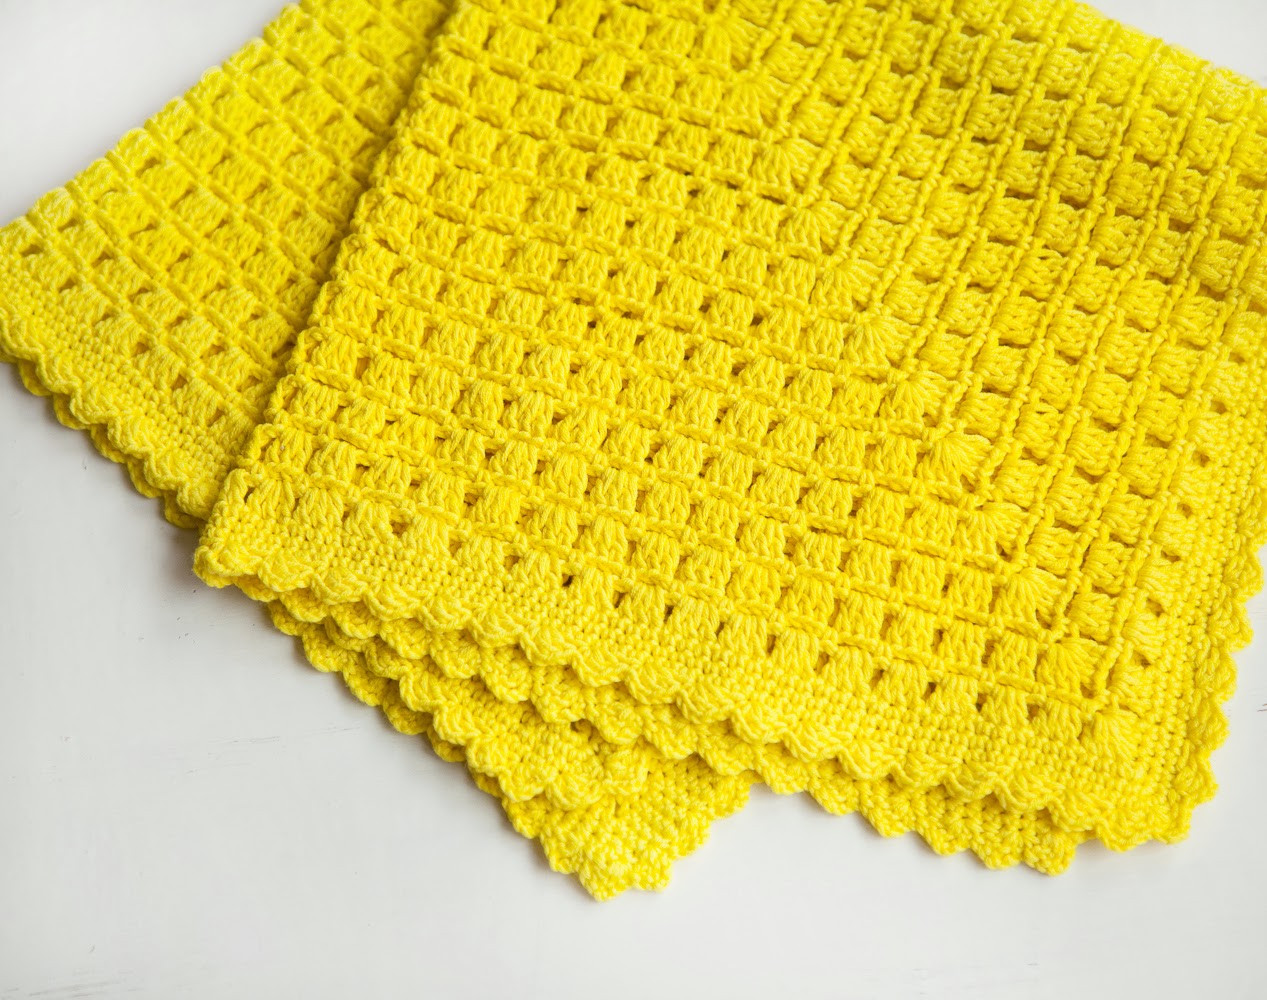 Crochet Patterns for Beginners Unique Beginner Crochet Patterns Baby Blanket Of Crochet Patterns for Beginners Unique Adult Slippers Crochet Pattern Pdf Easy Great for